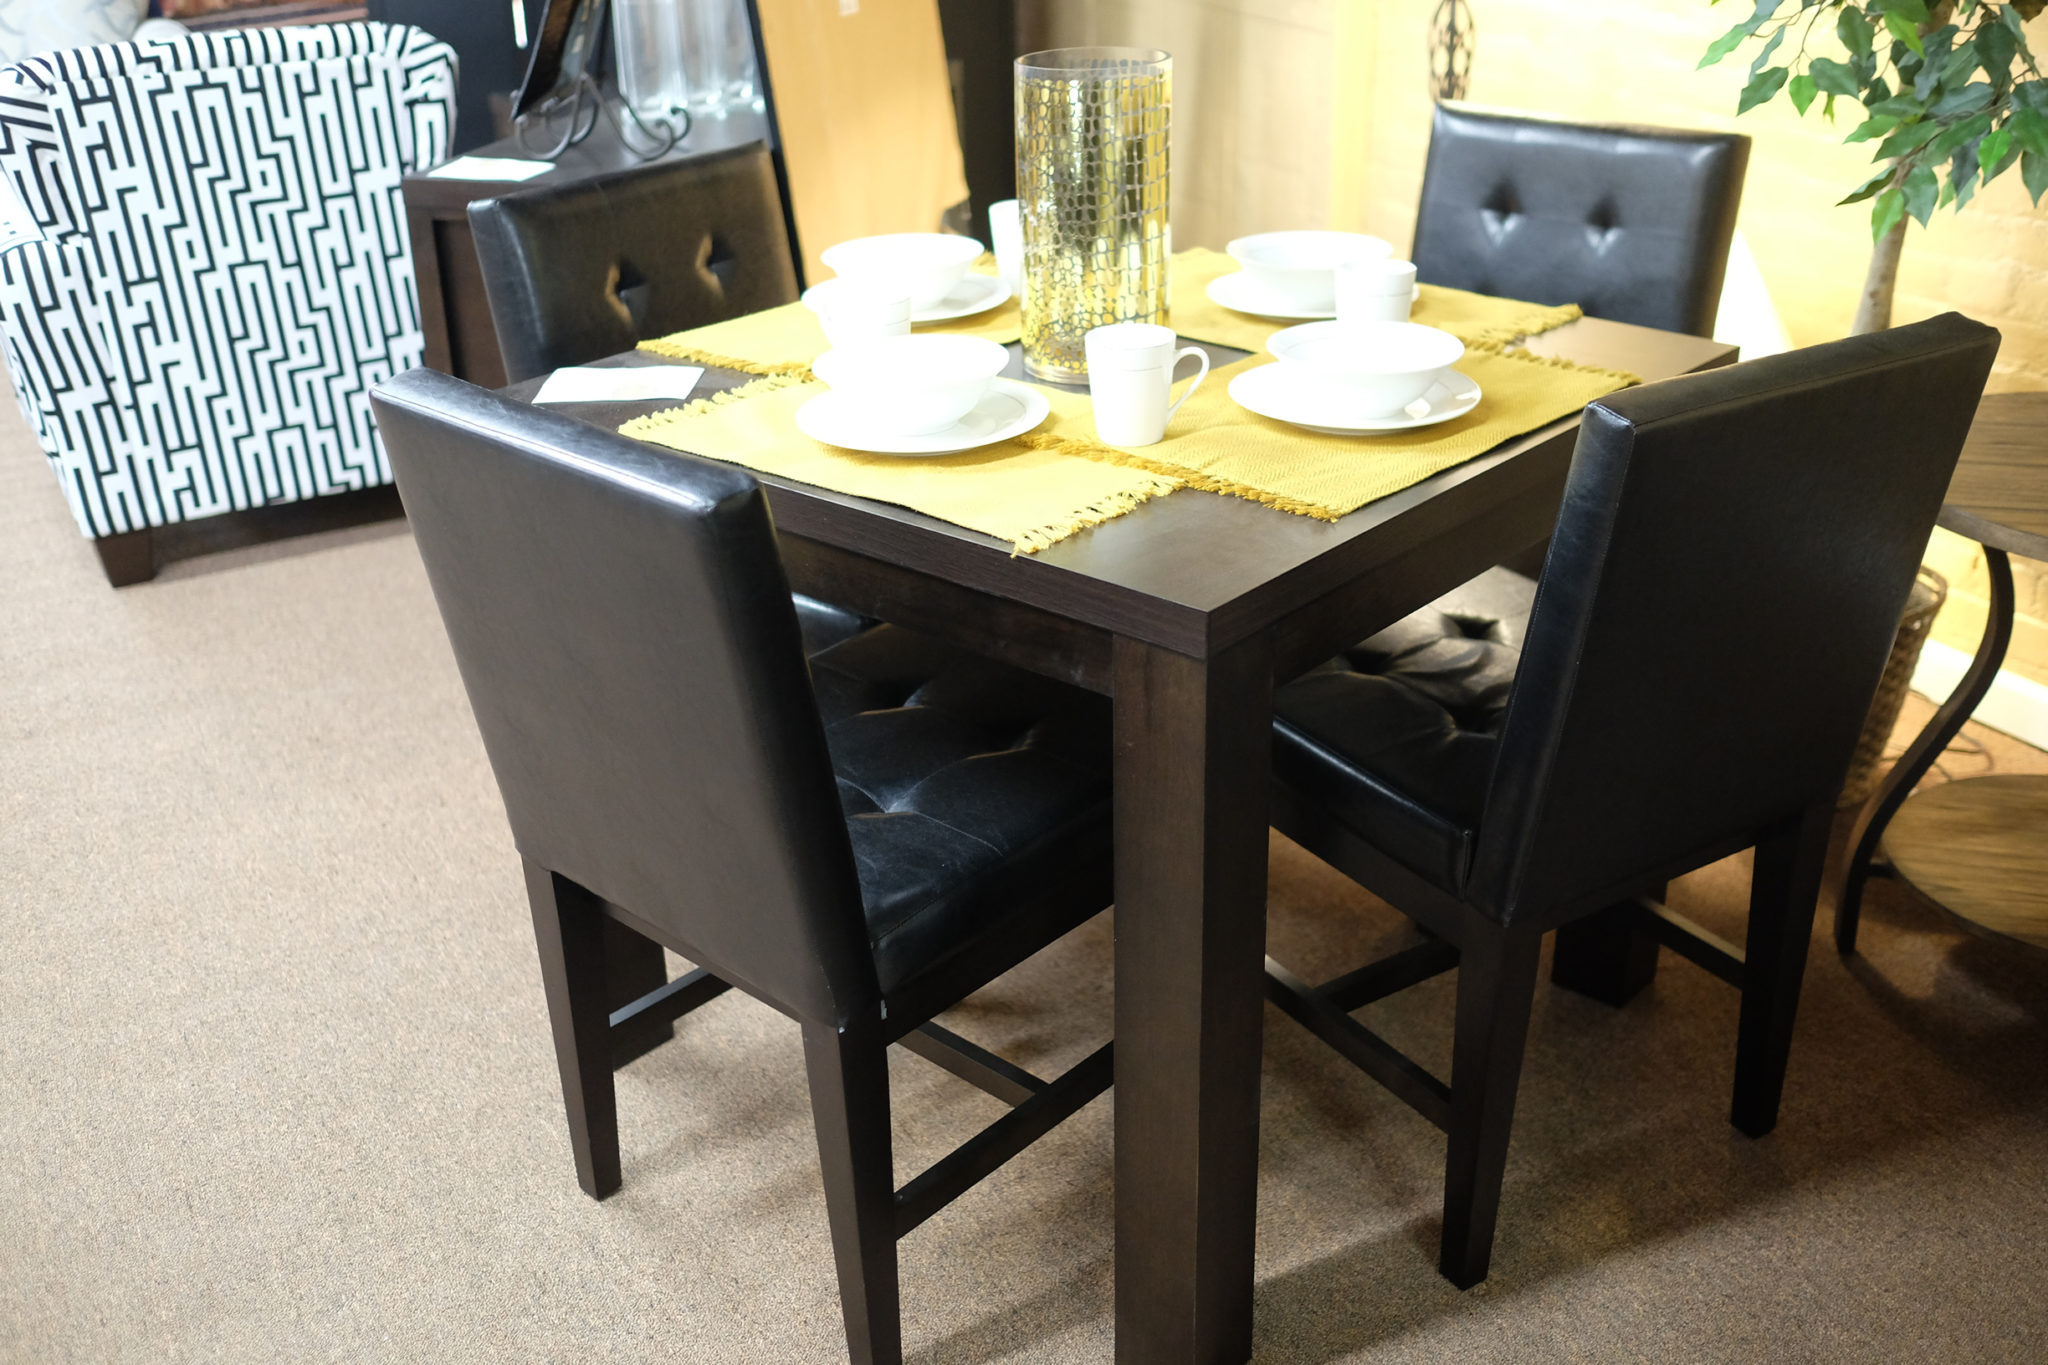 Progressive Athena Coffee Table & End Tables Pittsburgh Furniture